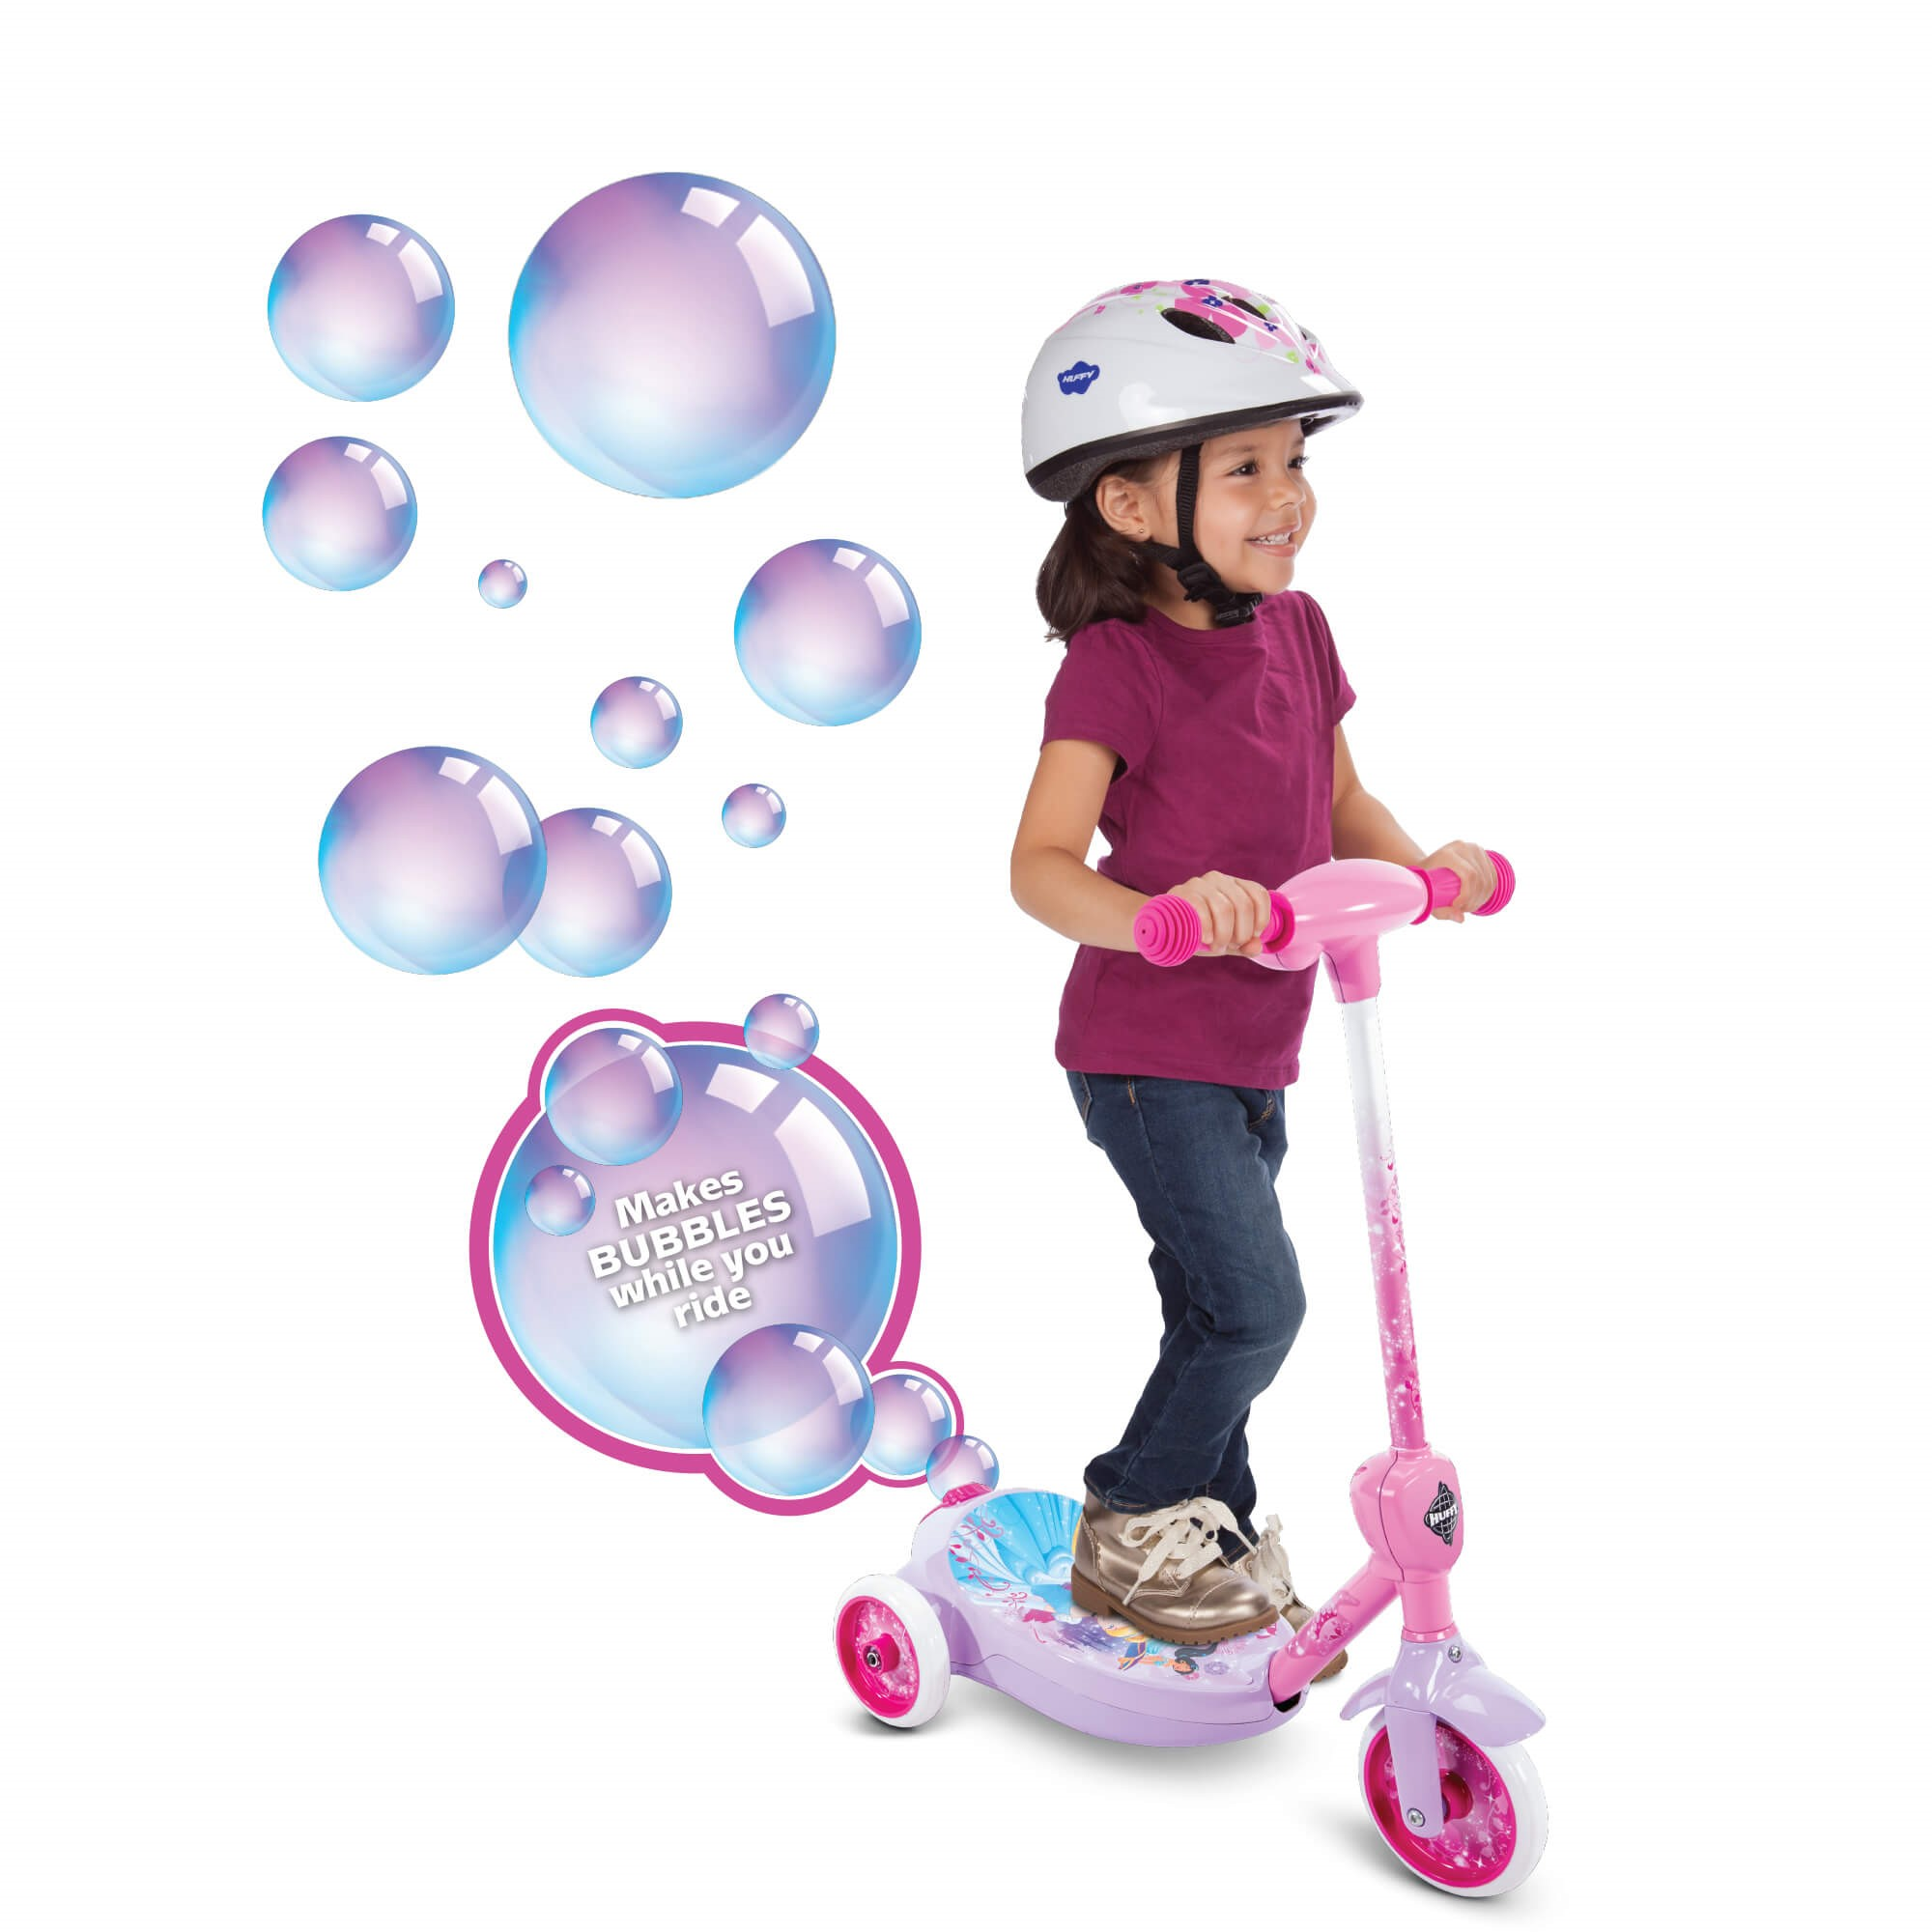 Disney Princess Girls' 6V Electric 3-Wheel Bubble Scooter by Huffy